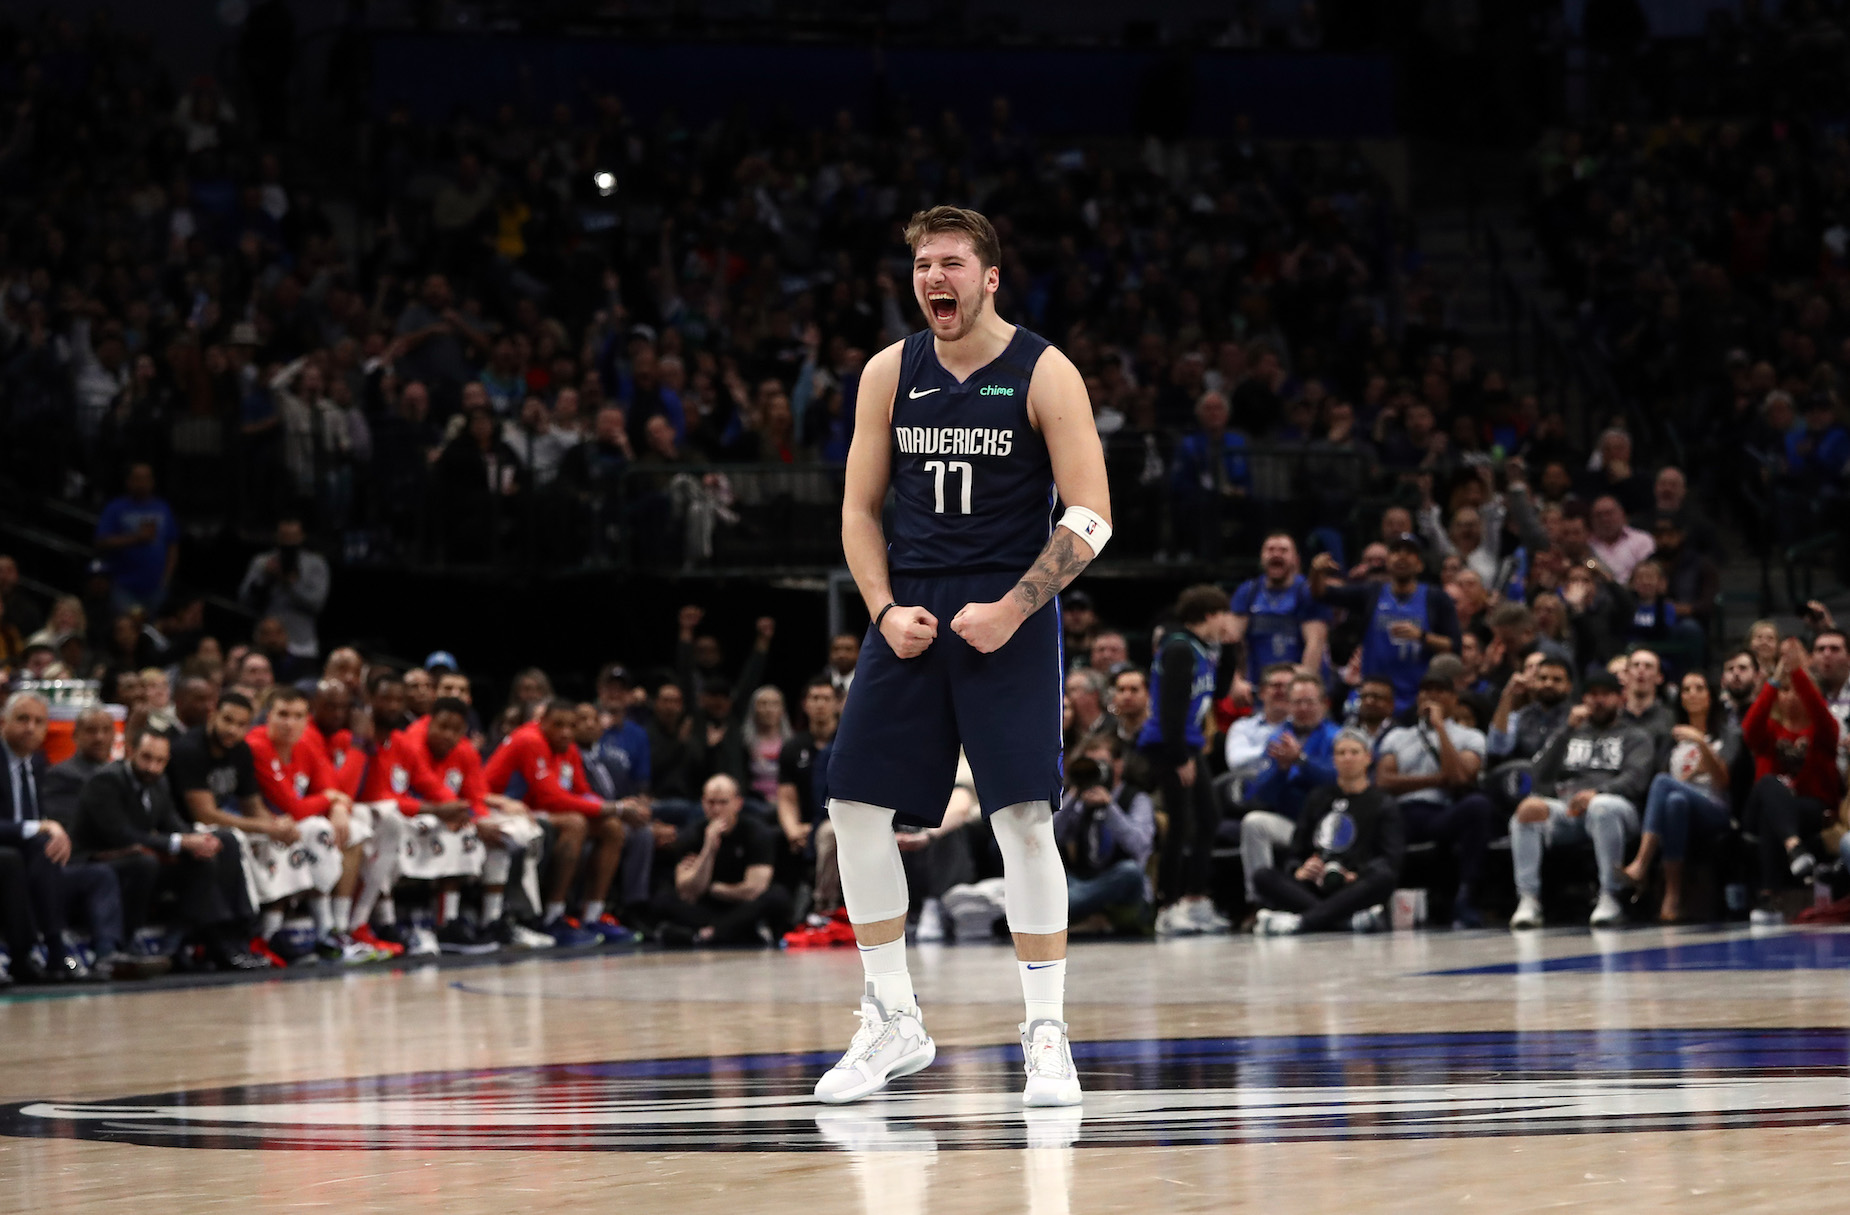 Luka Doncic was compared to a blend of Jason Kidd and Larry Bird by Clippers coach Doc Rivers.